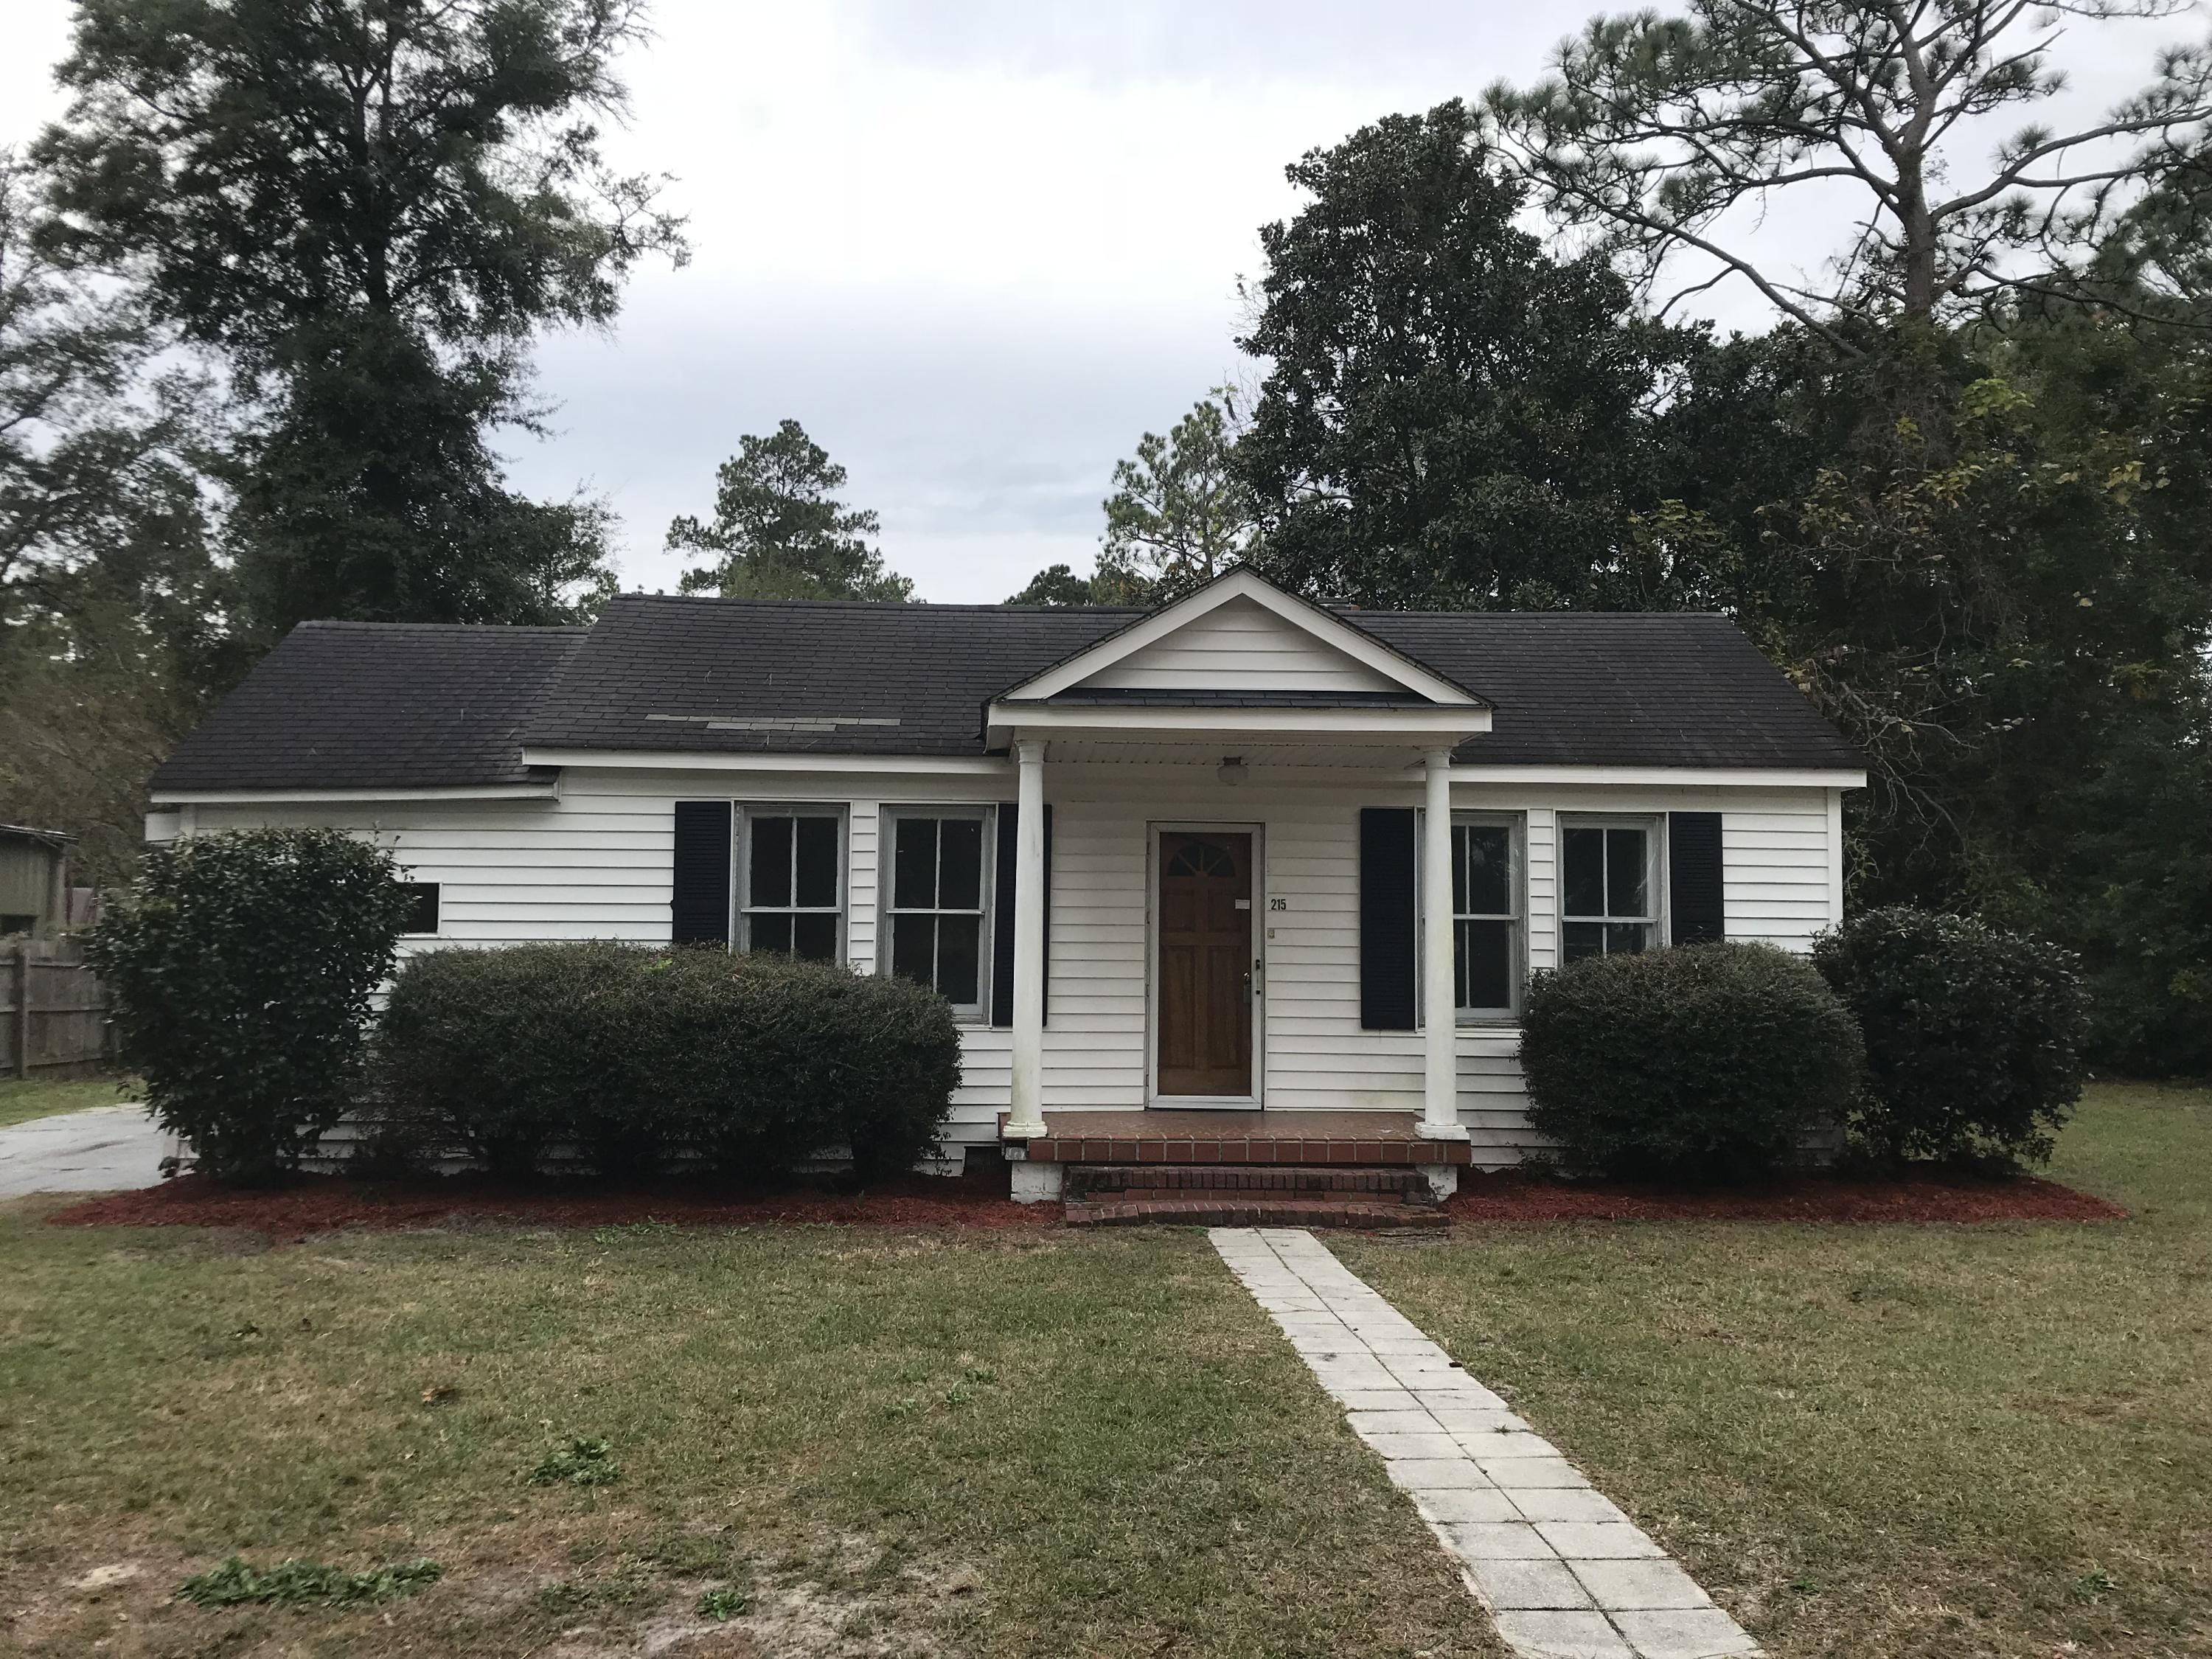 215 Meadow Walterboro, SC 29488